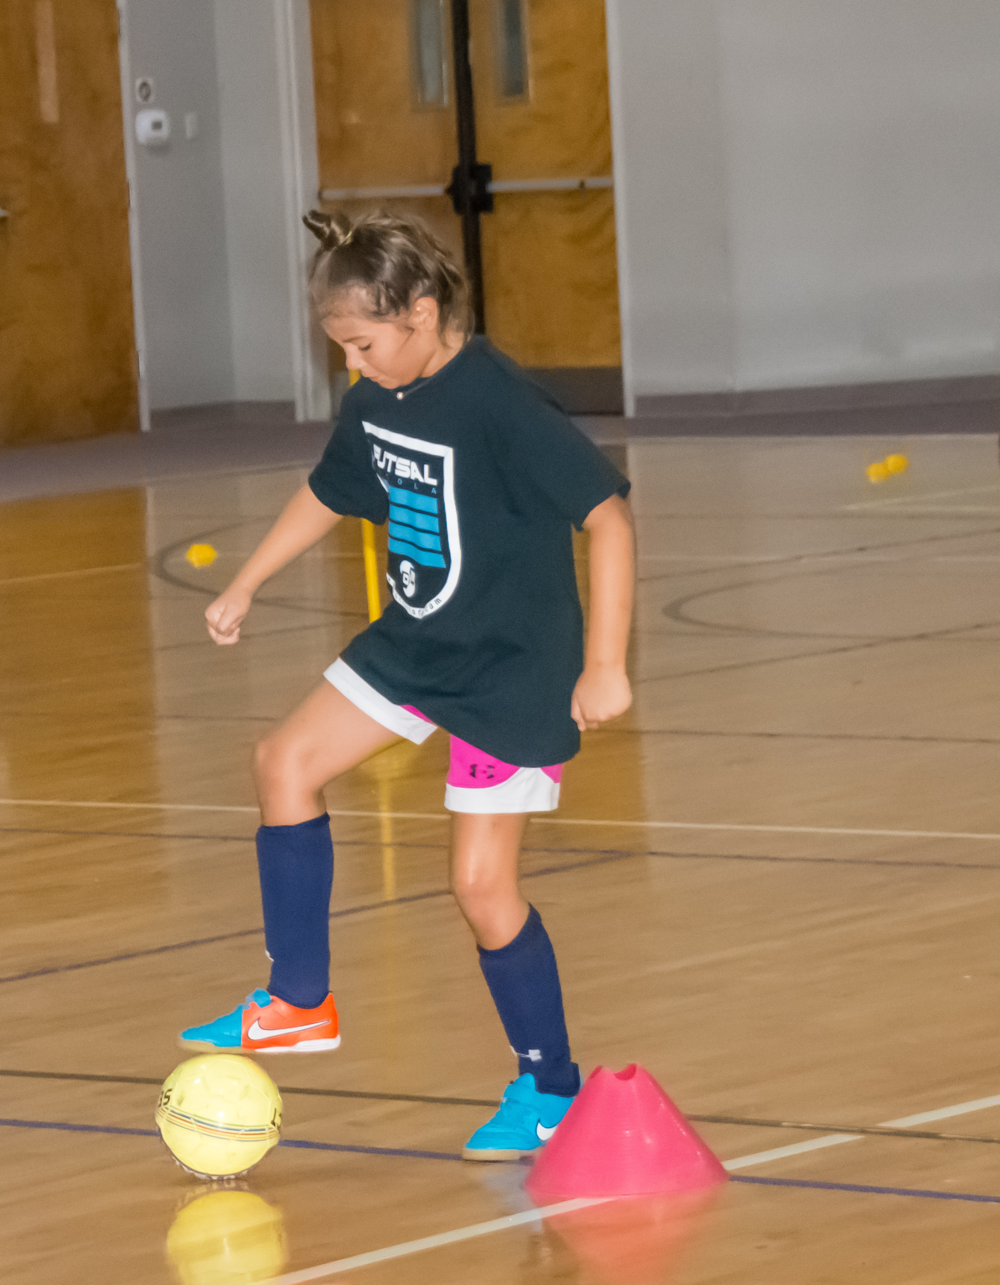 FUTSAL 5V5 - Futsal have recently picked up interest in the United States. The game that serves as a primary tool for youth development all over the world has finally founds its way into the US Soccer Culture.Learn more ➝